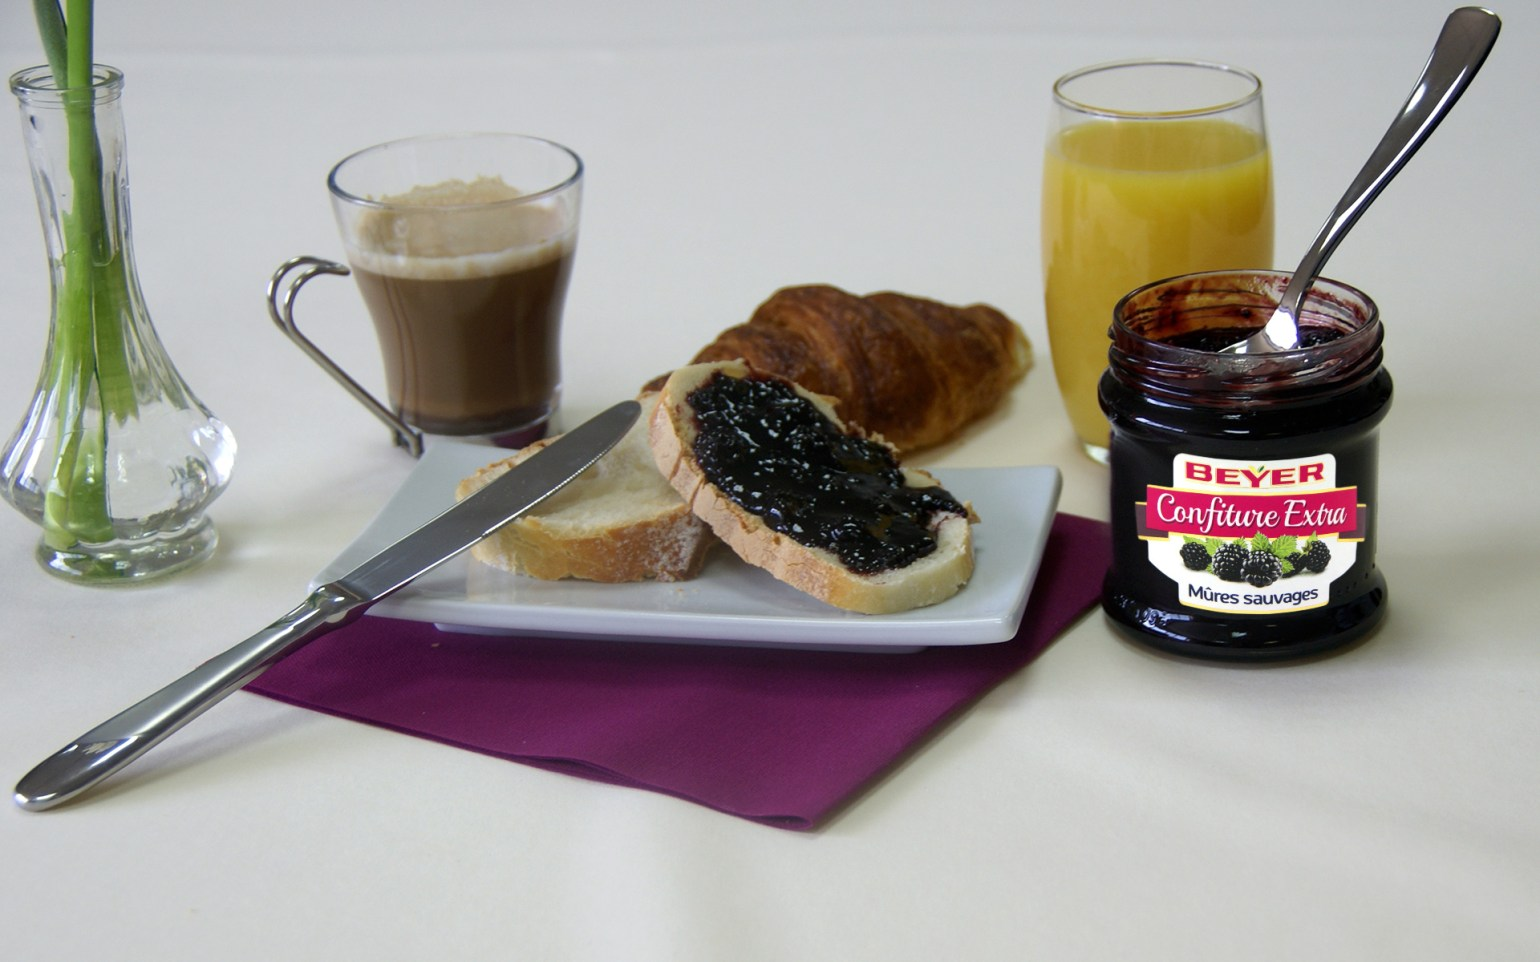 Confiture Extra Mûres sauvages 370g